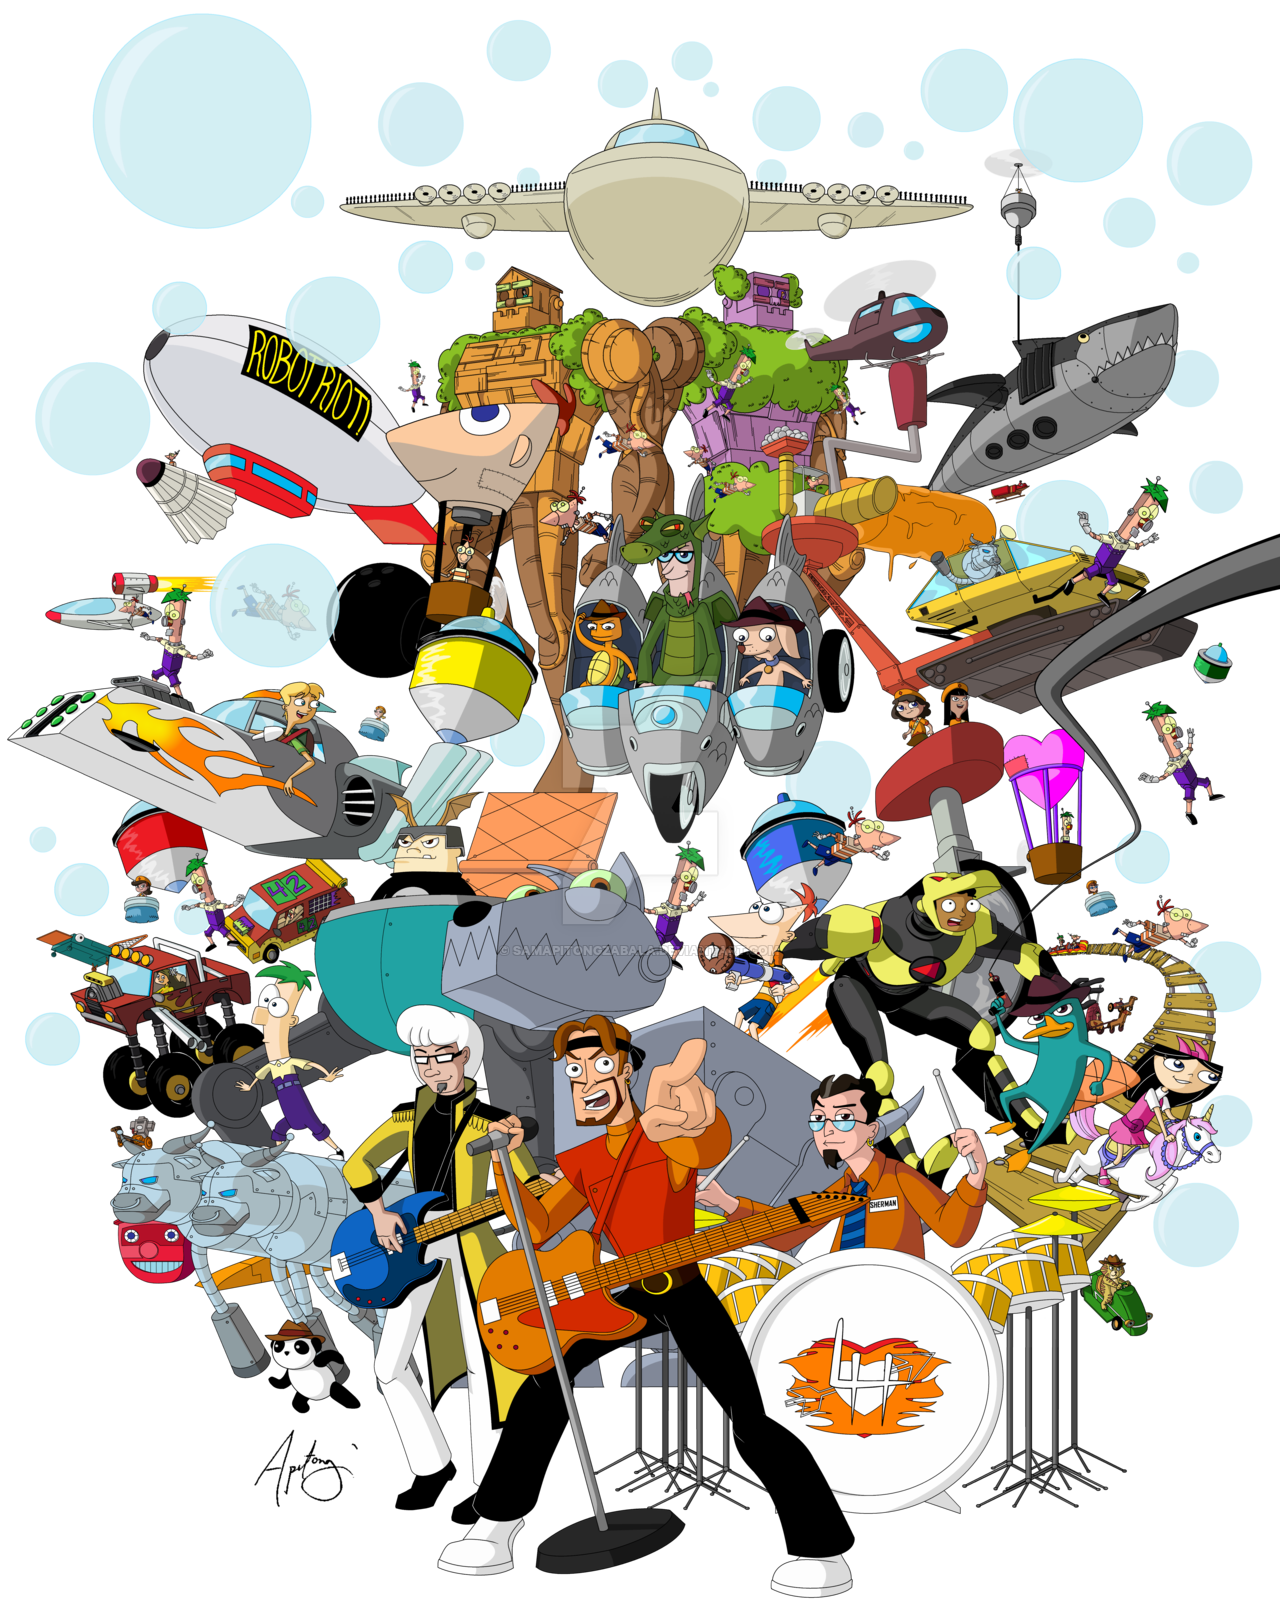 Riot clipart crowded On MS Riot DeviantArt Riot